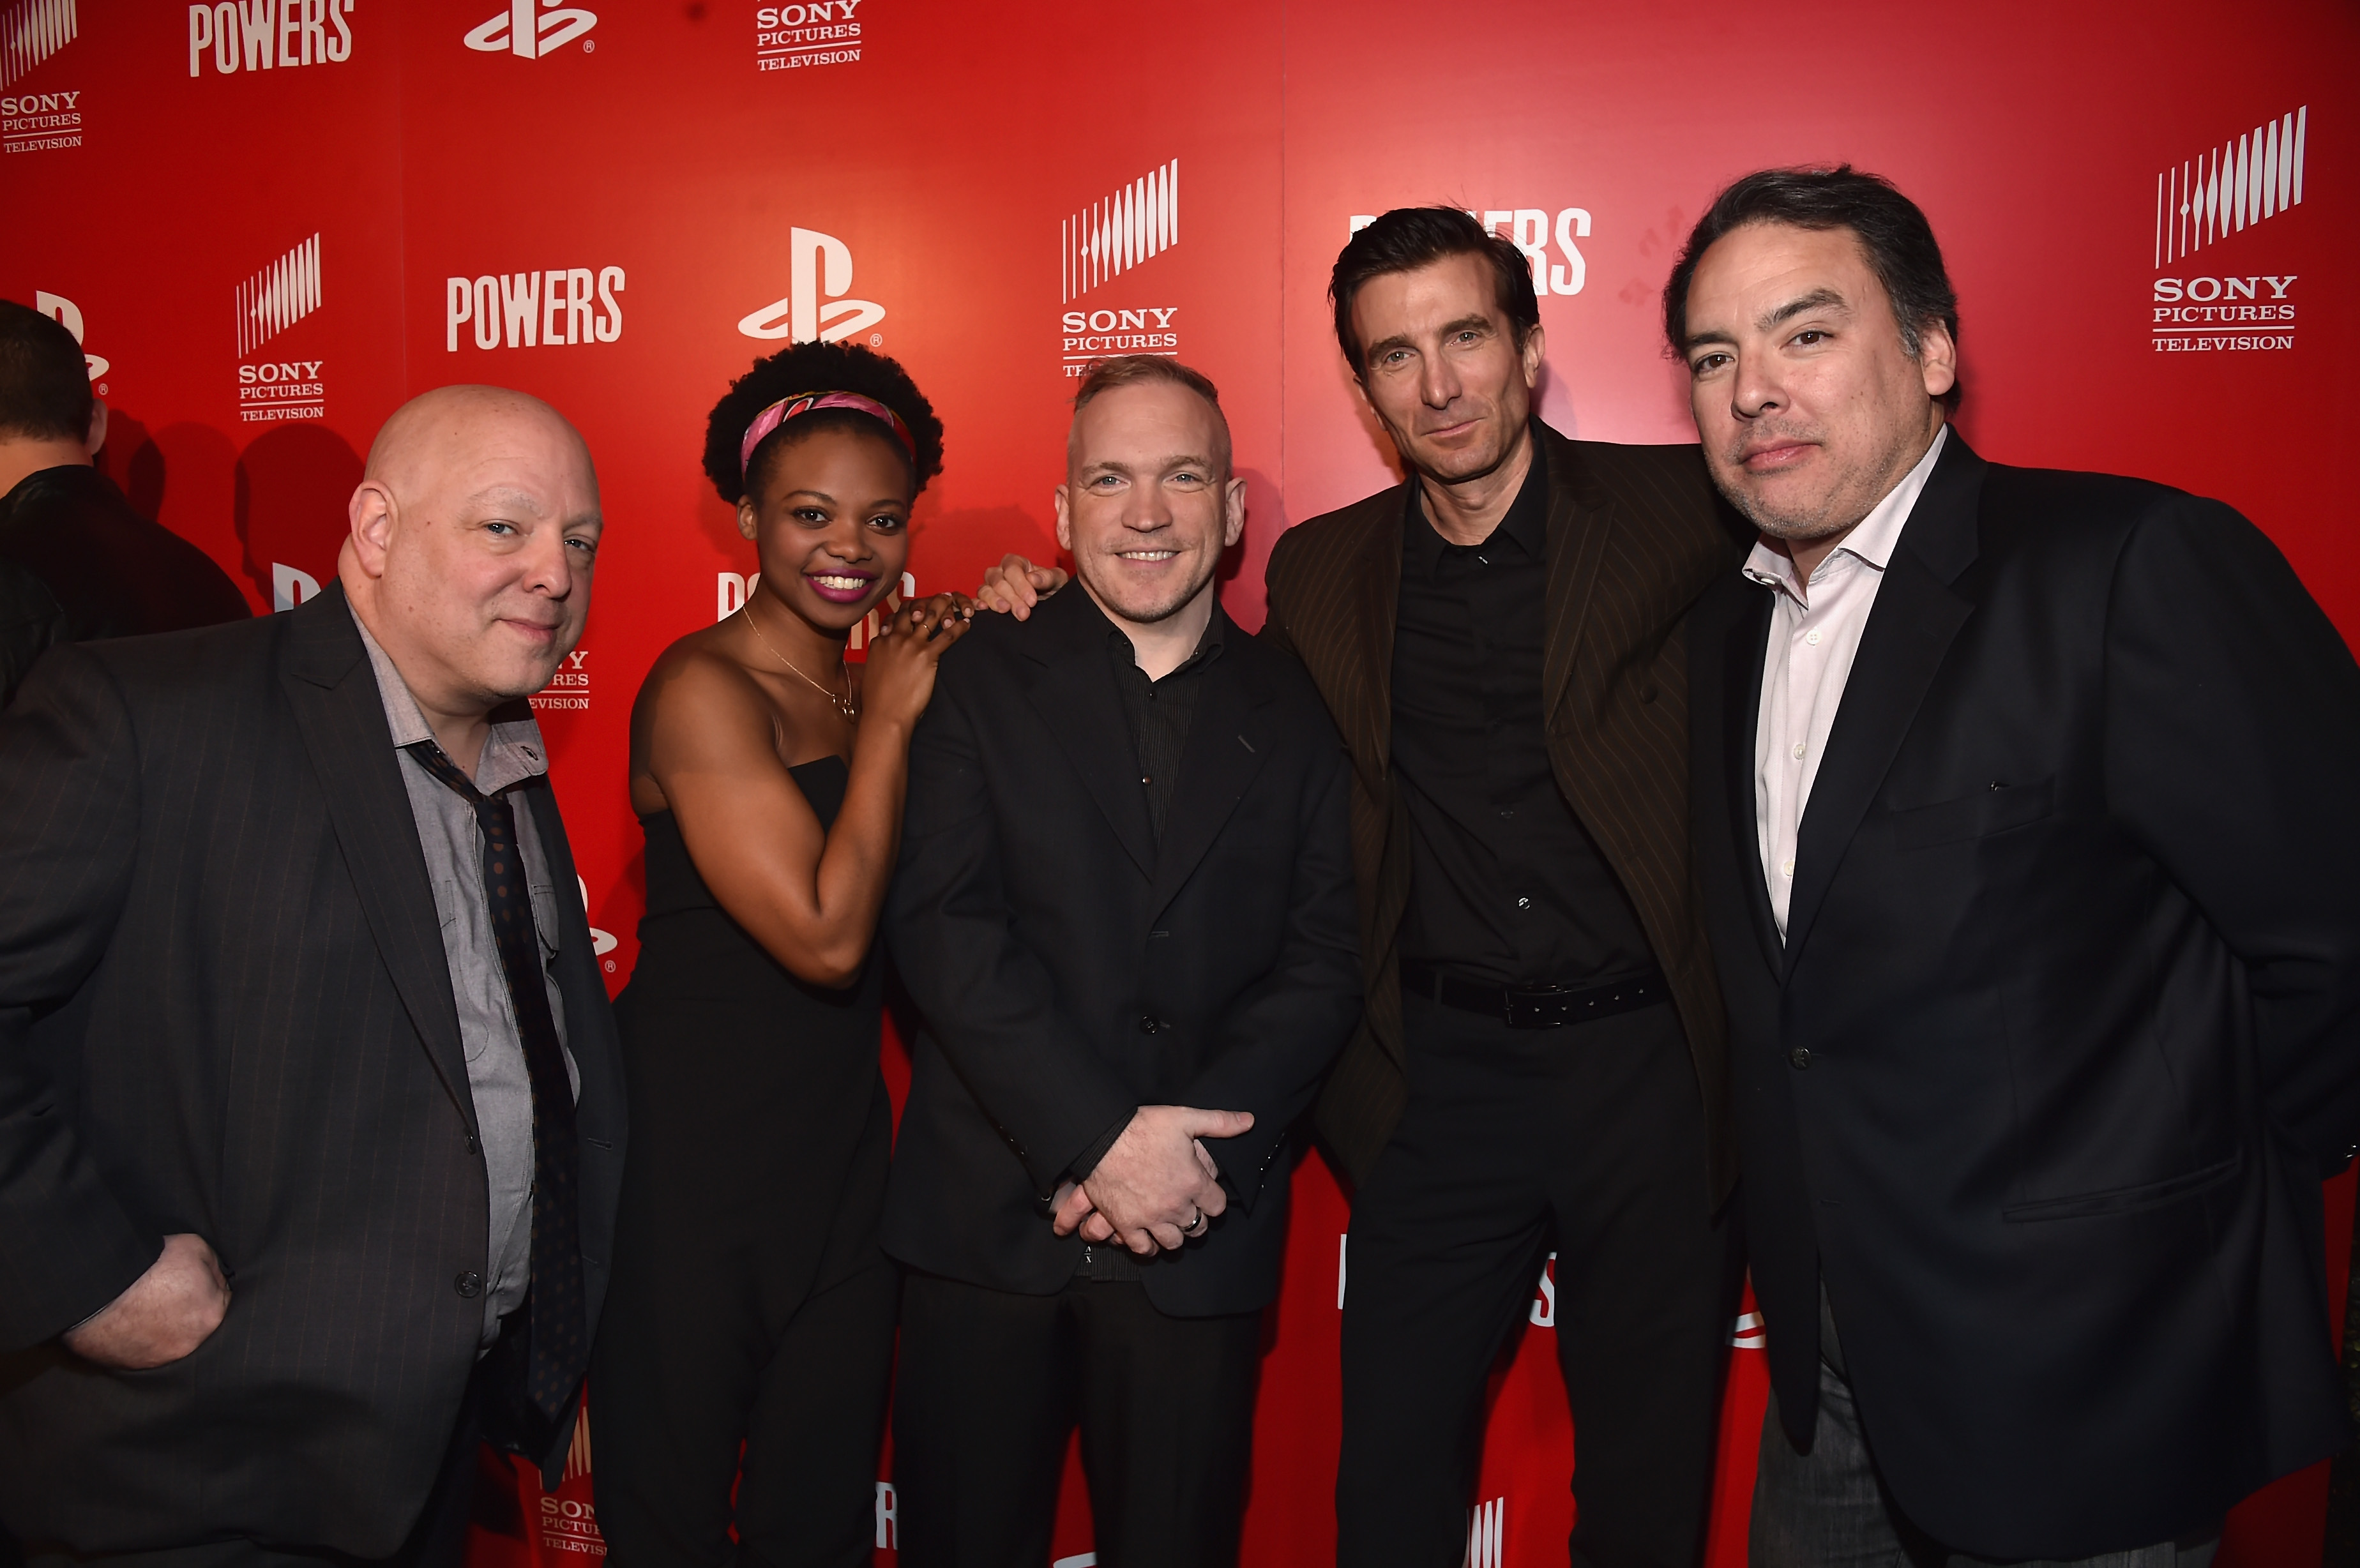 Bendis (far left) and the cast of Powers